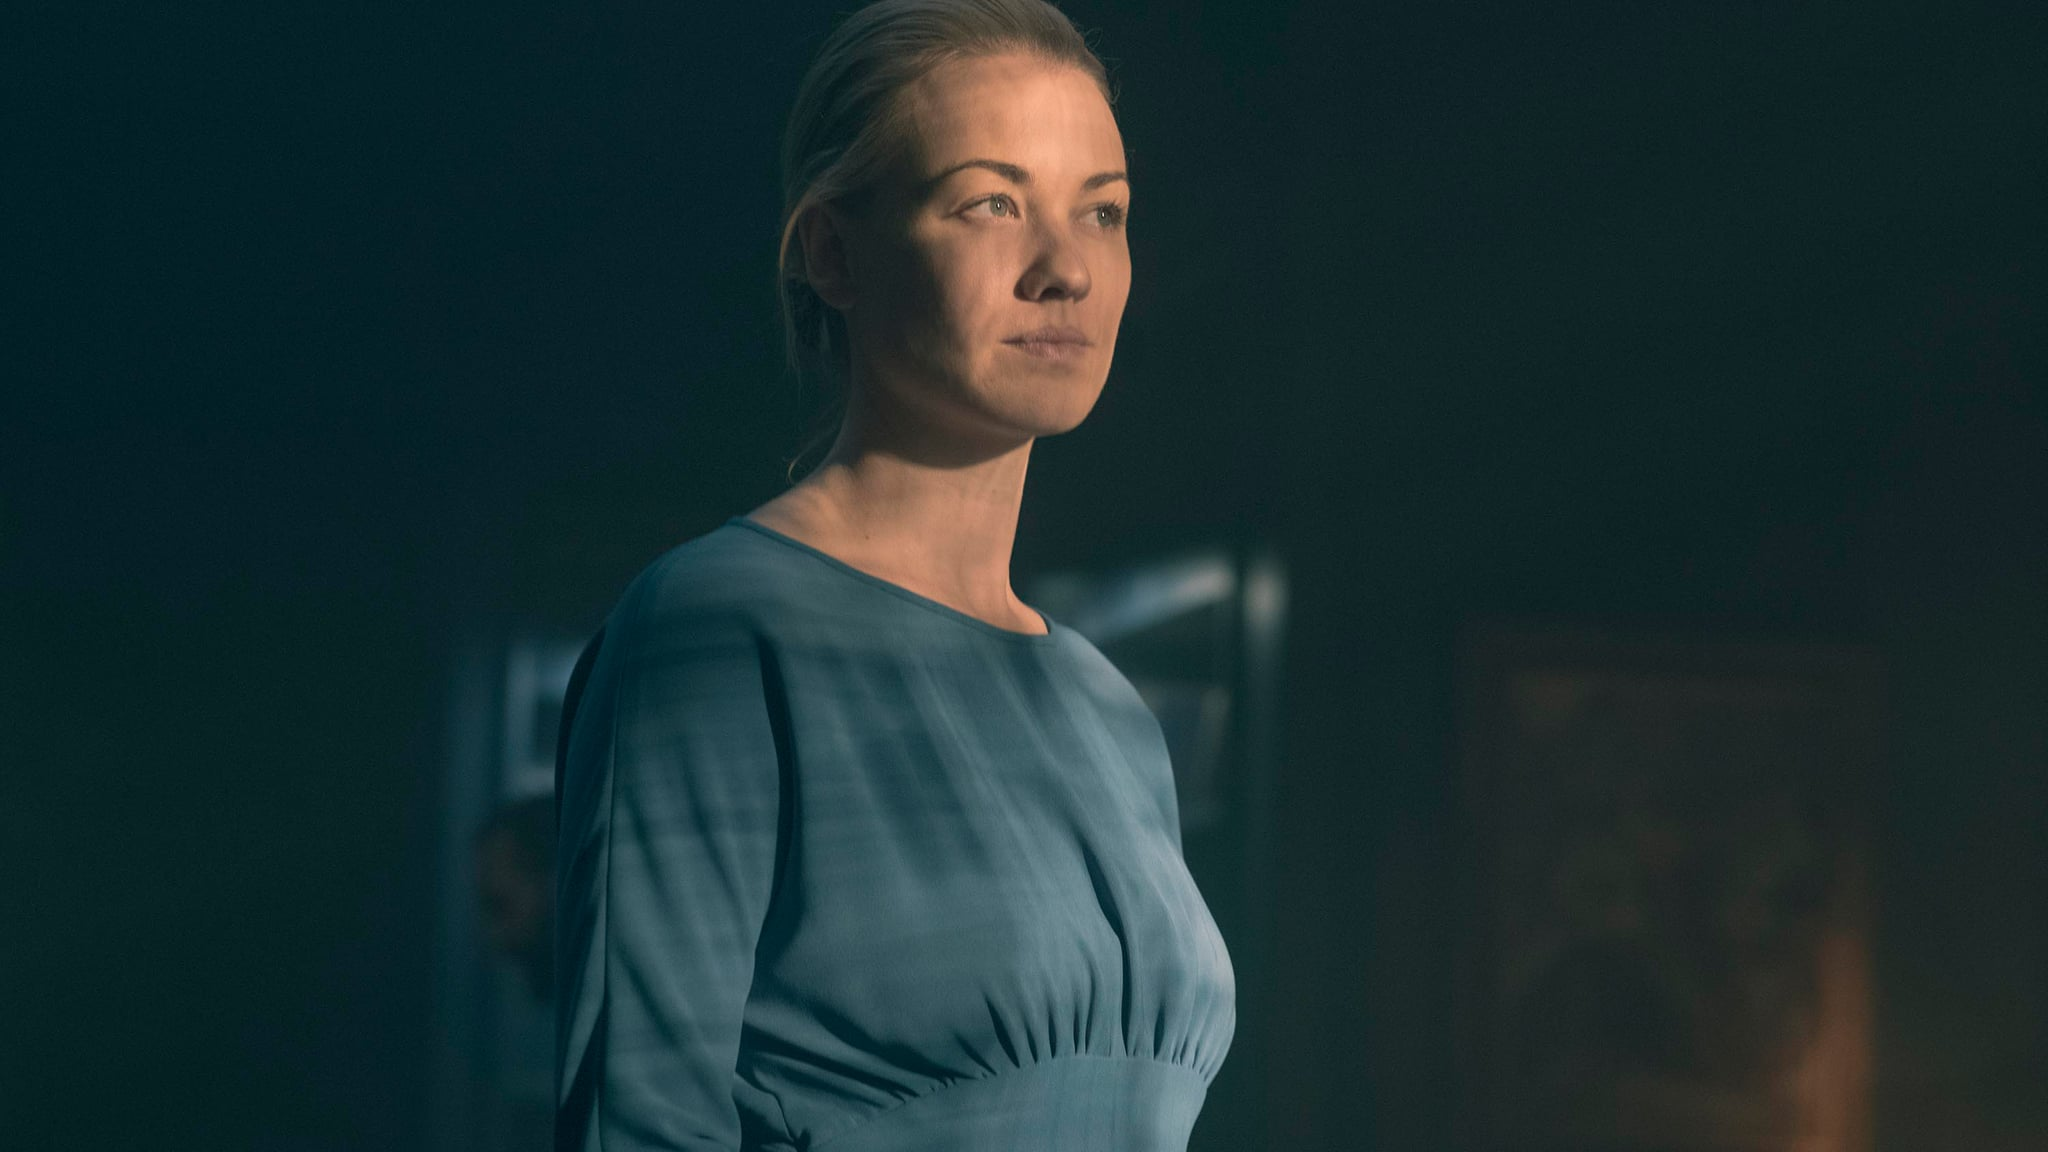 THE HANDMAID'S TALE, Yvonne Strahovski, 'Women's Work', (Season 2, ep. 208, aired June 6, 2018). photo: George Kraychyk / Hulu / courtesy Everett Collection